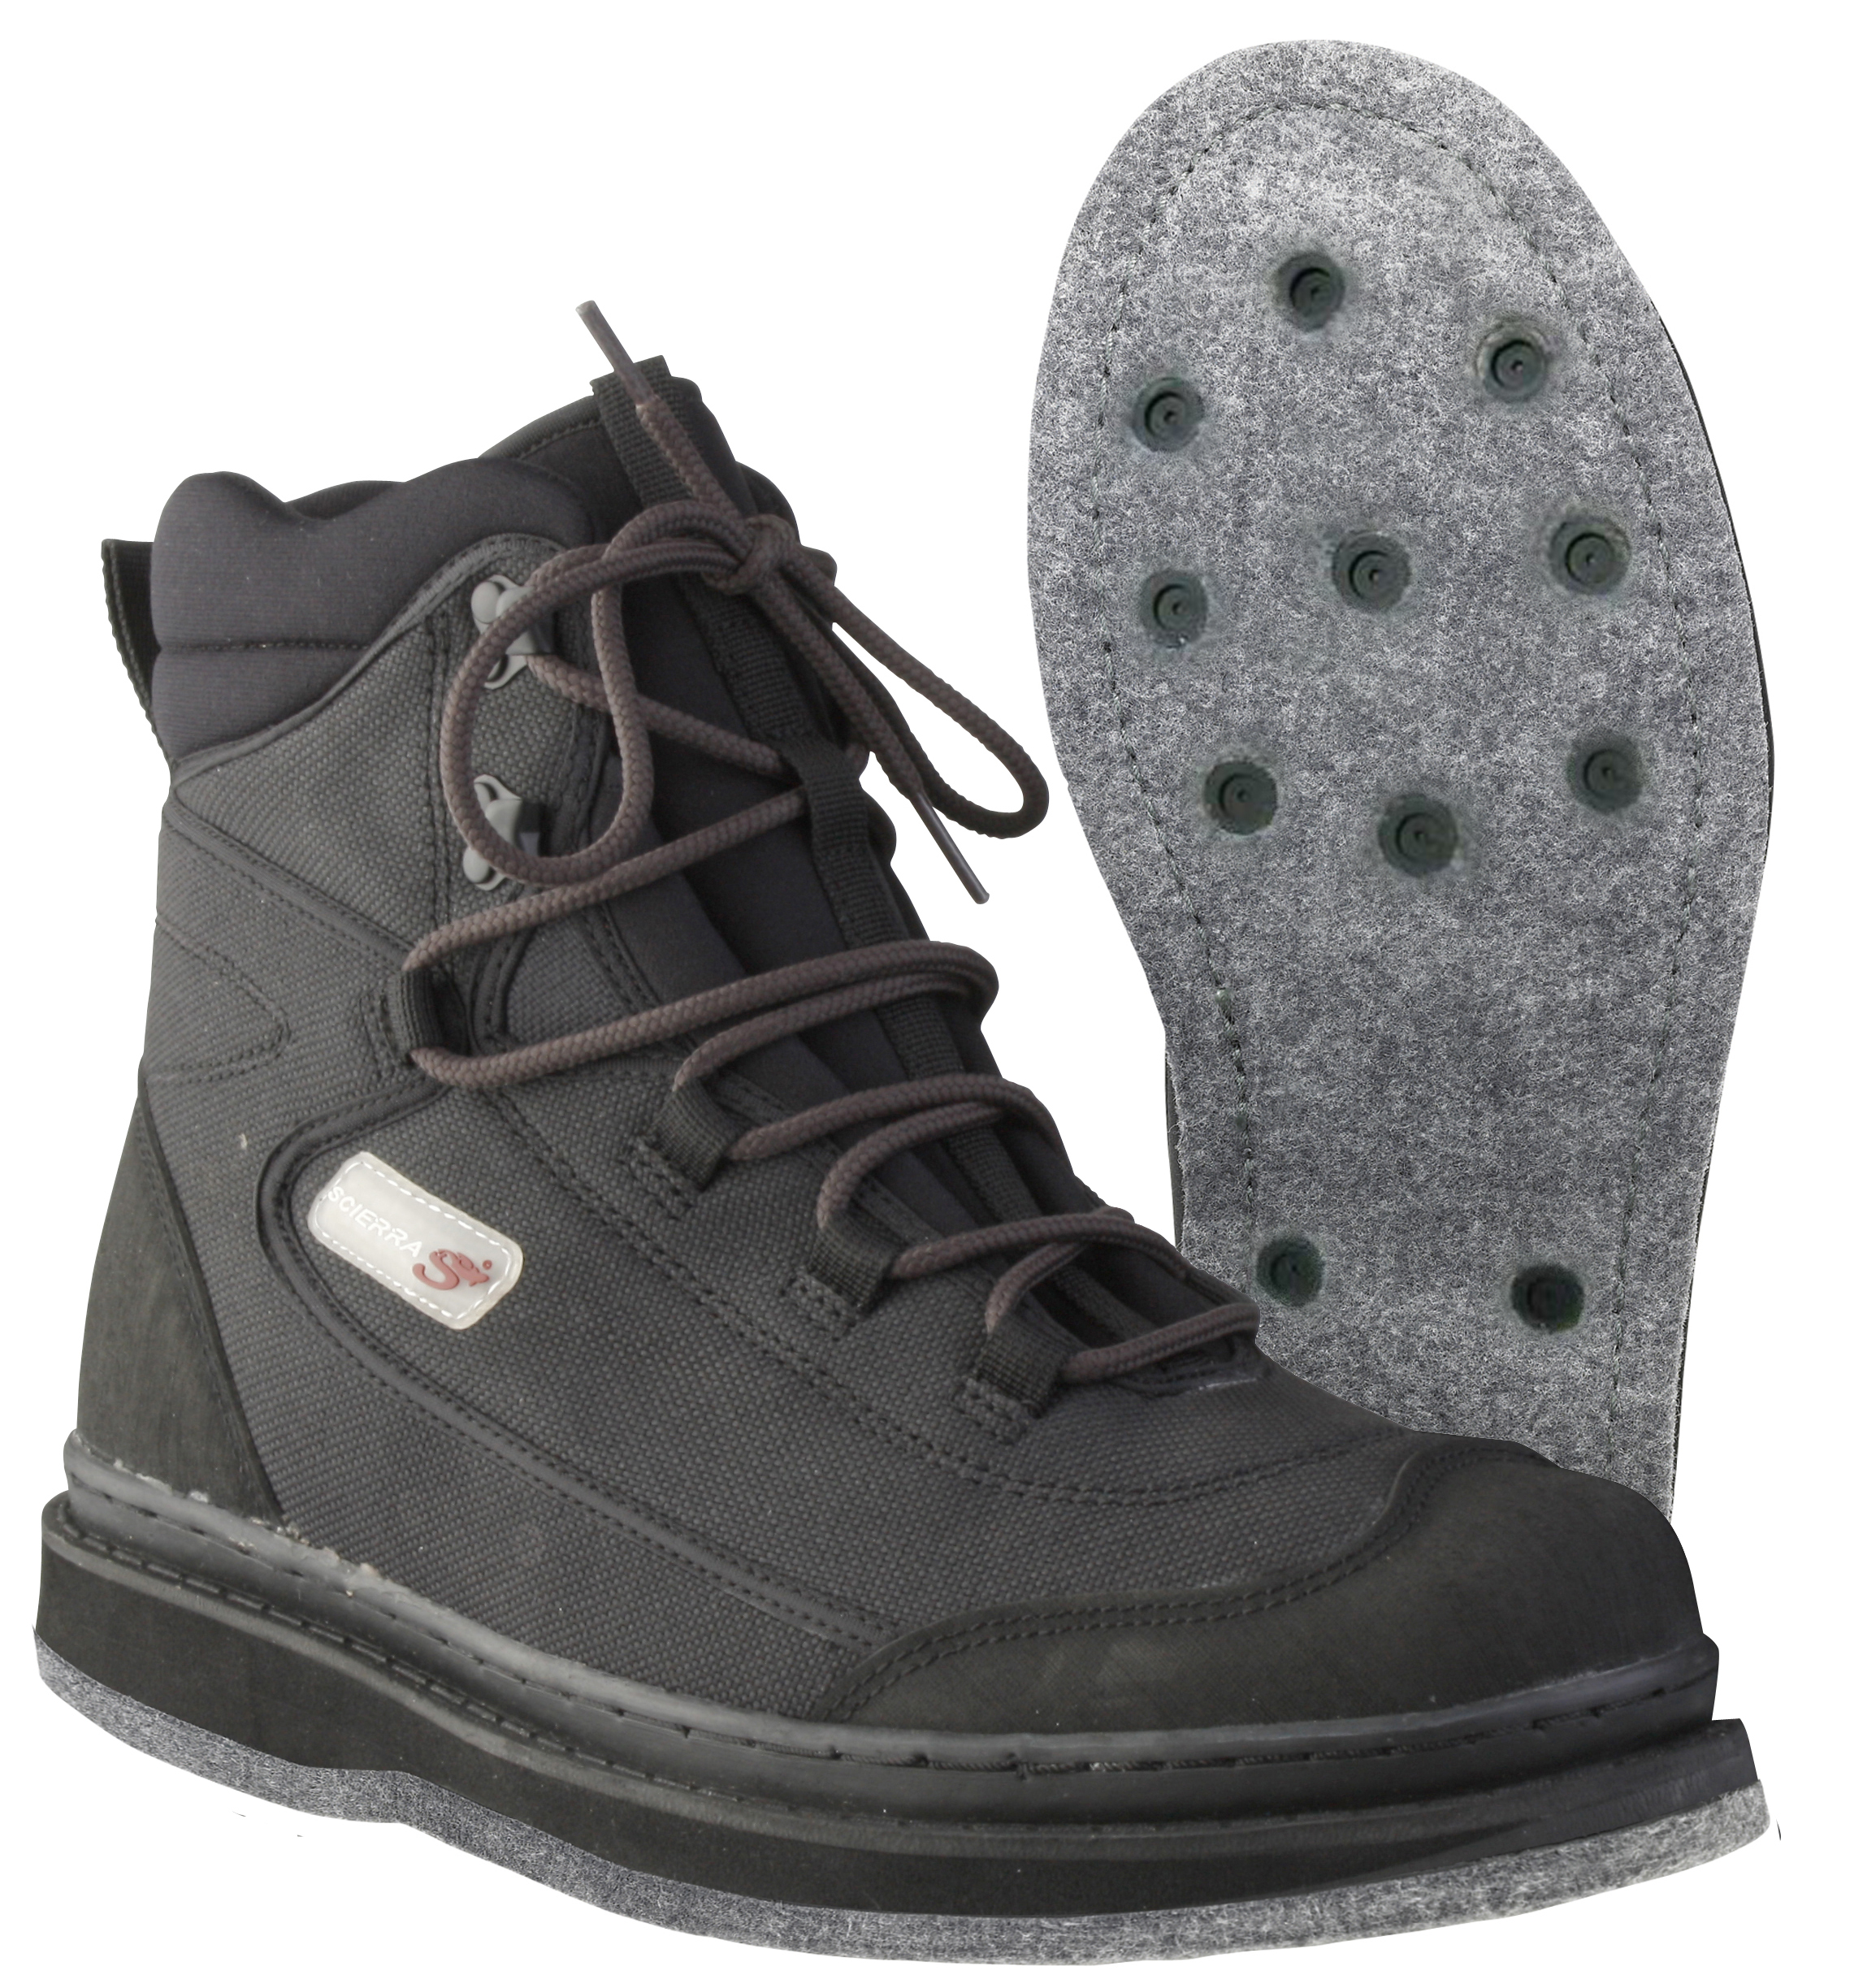 Scierra X Trail Felt Sole Wading Boots With Detachable